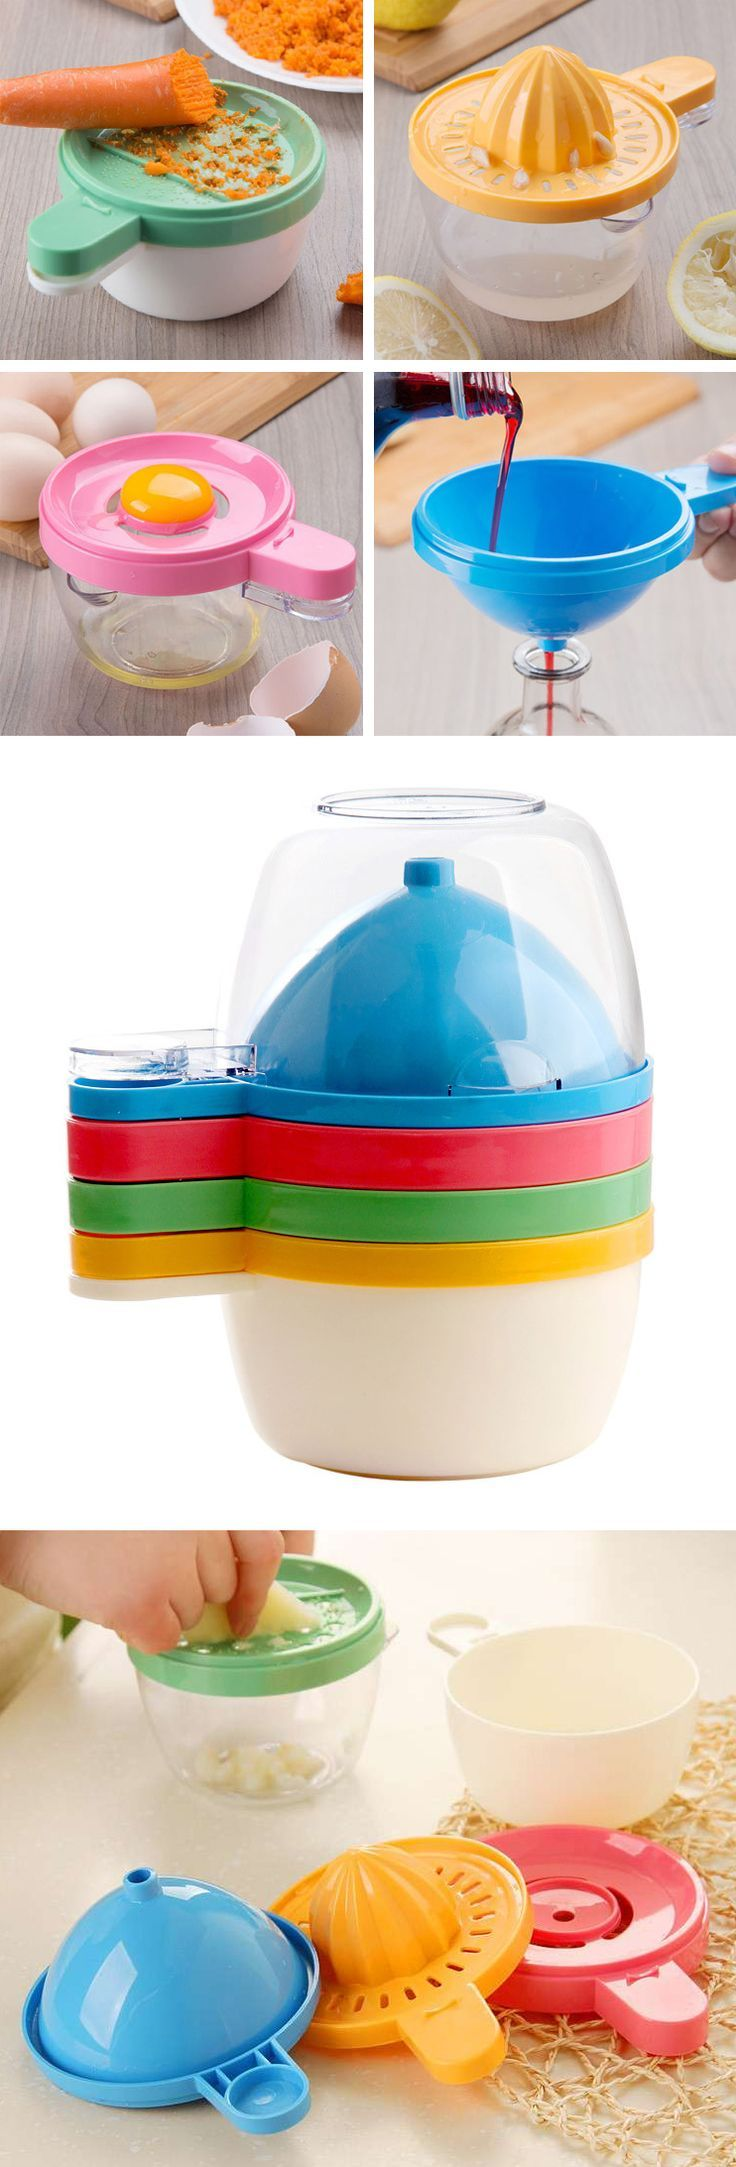 Very useful items for kitchen use.